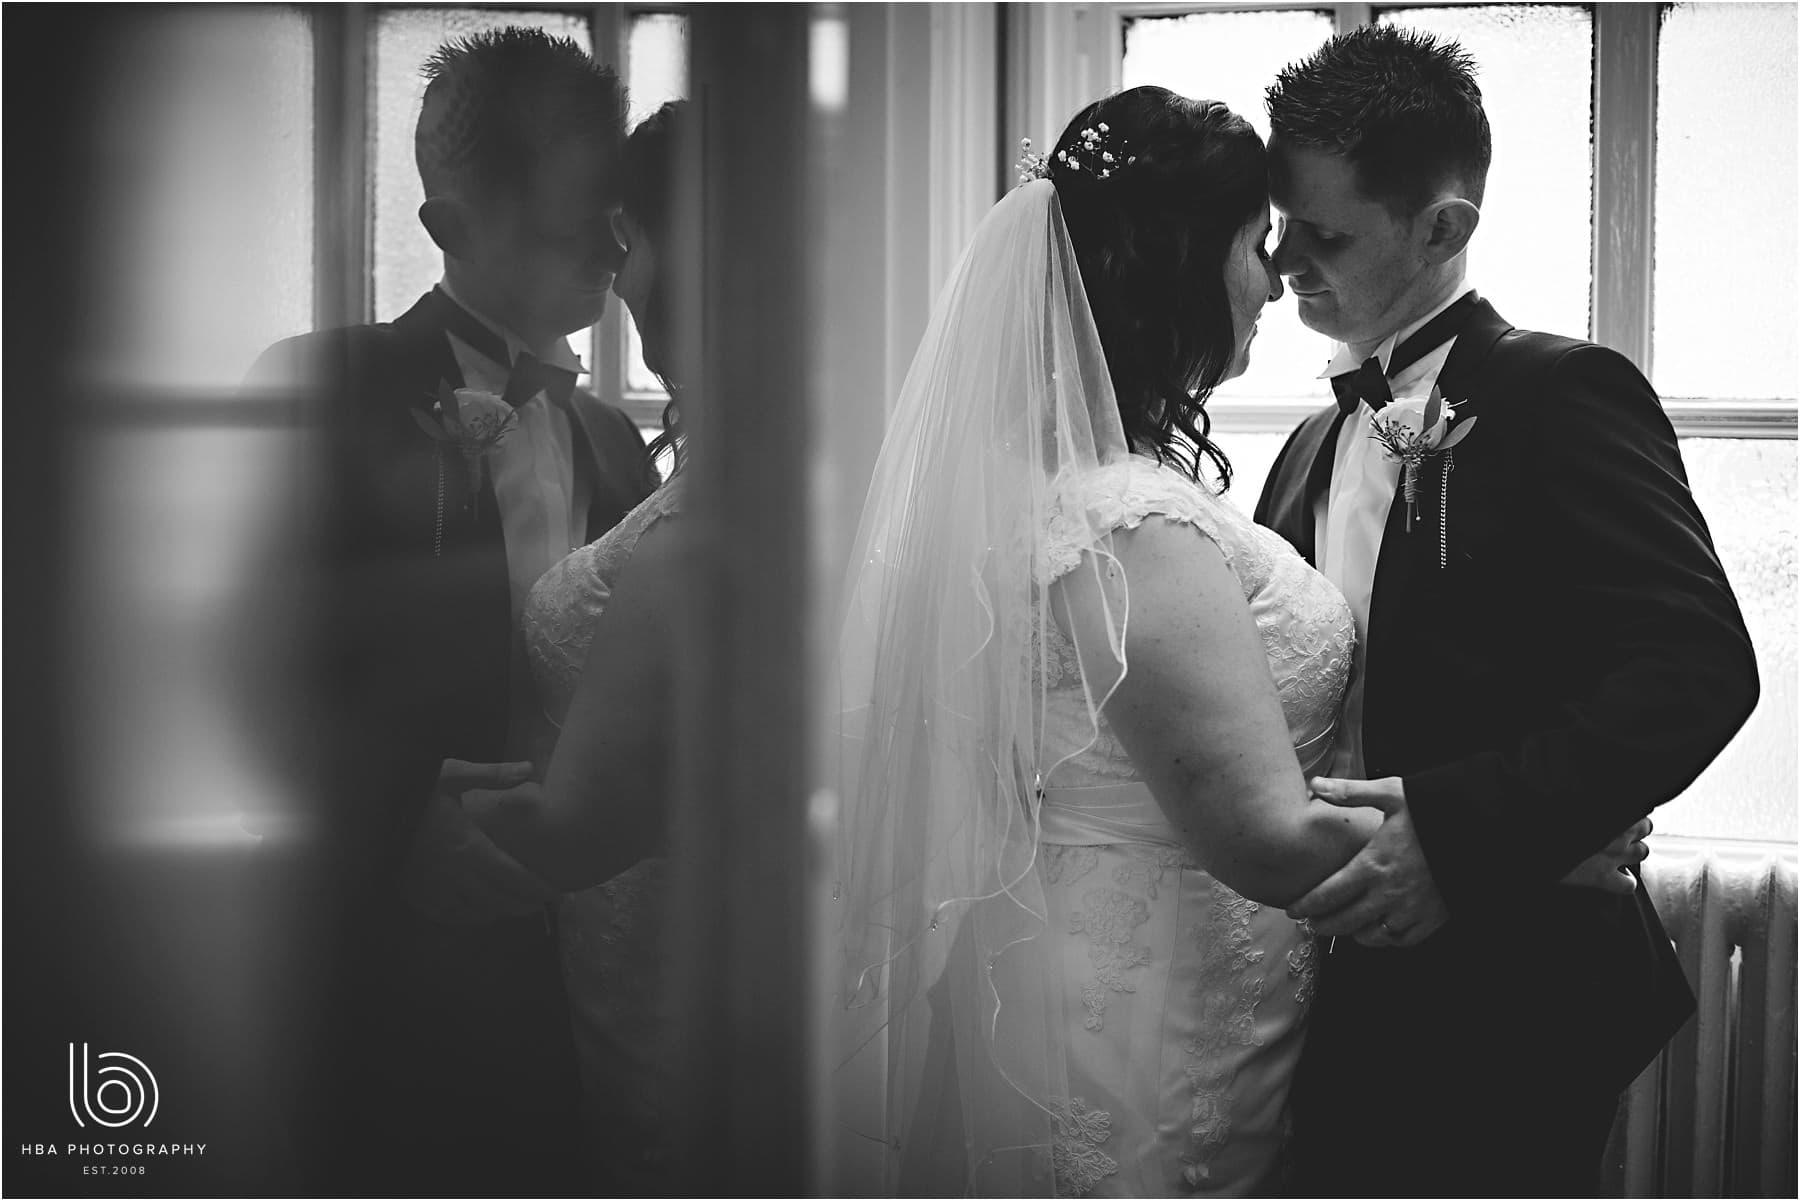 a black and white photo of the bride and groom together with a reflection on the wall